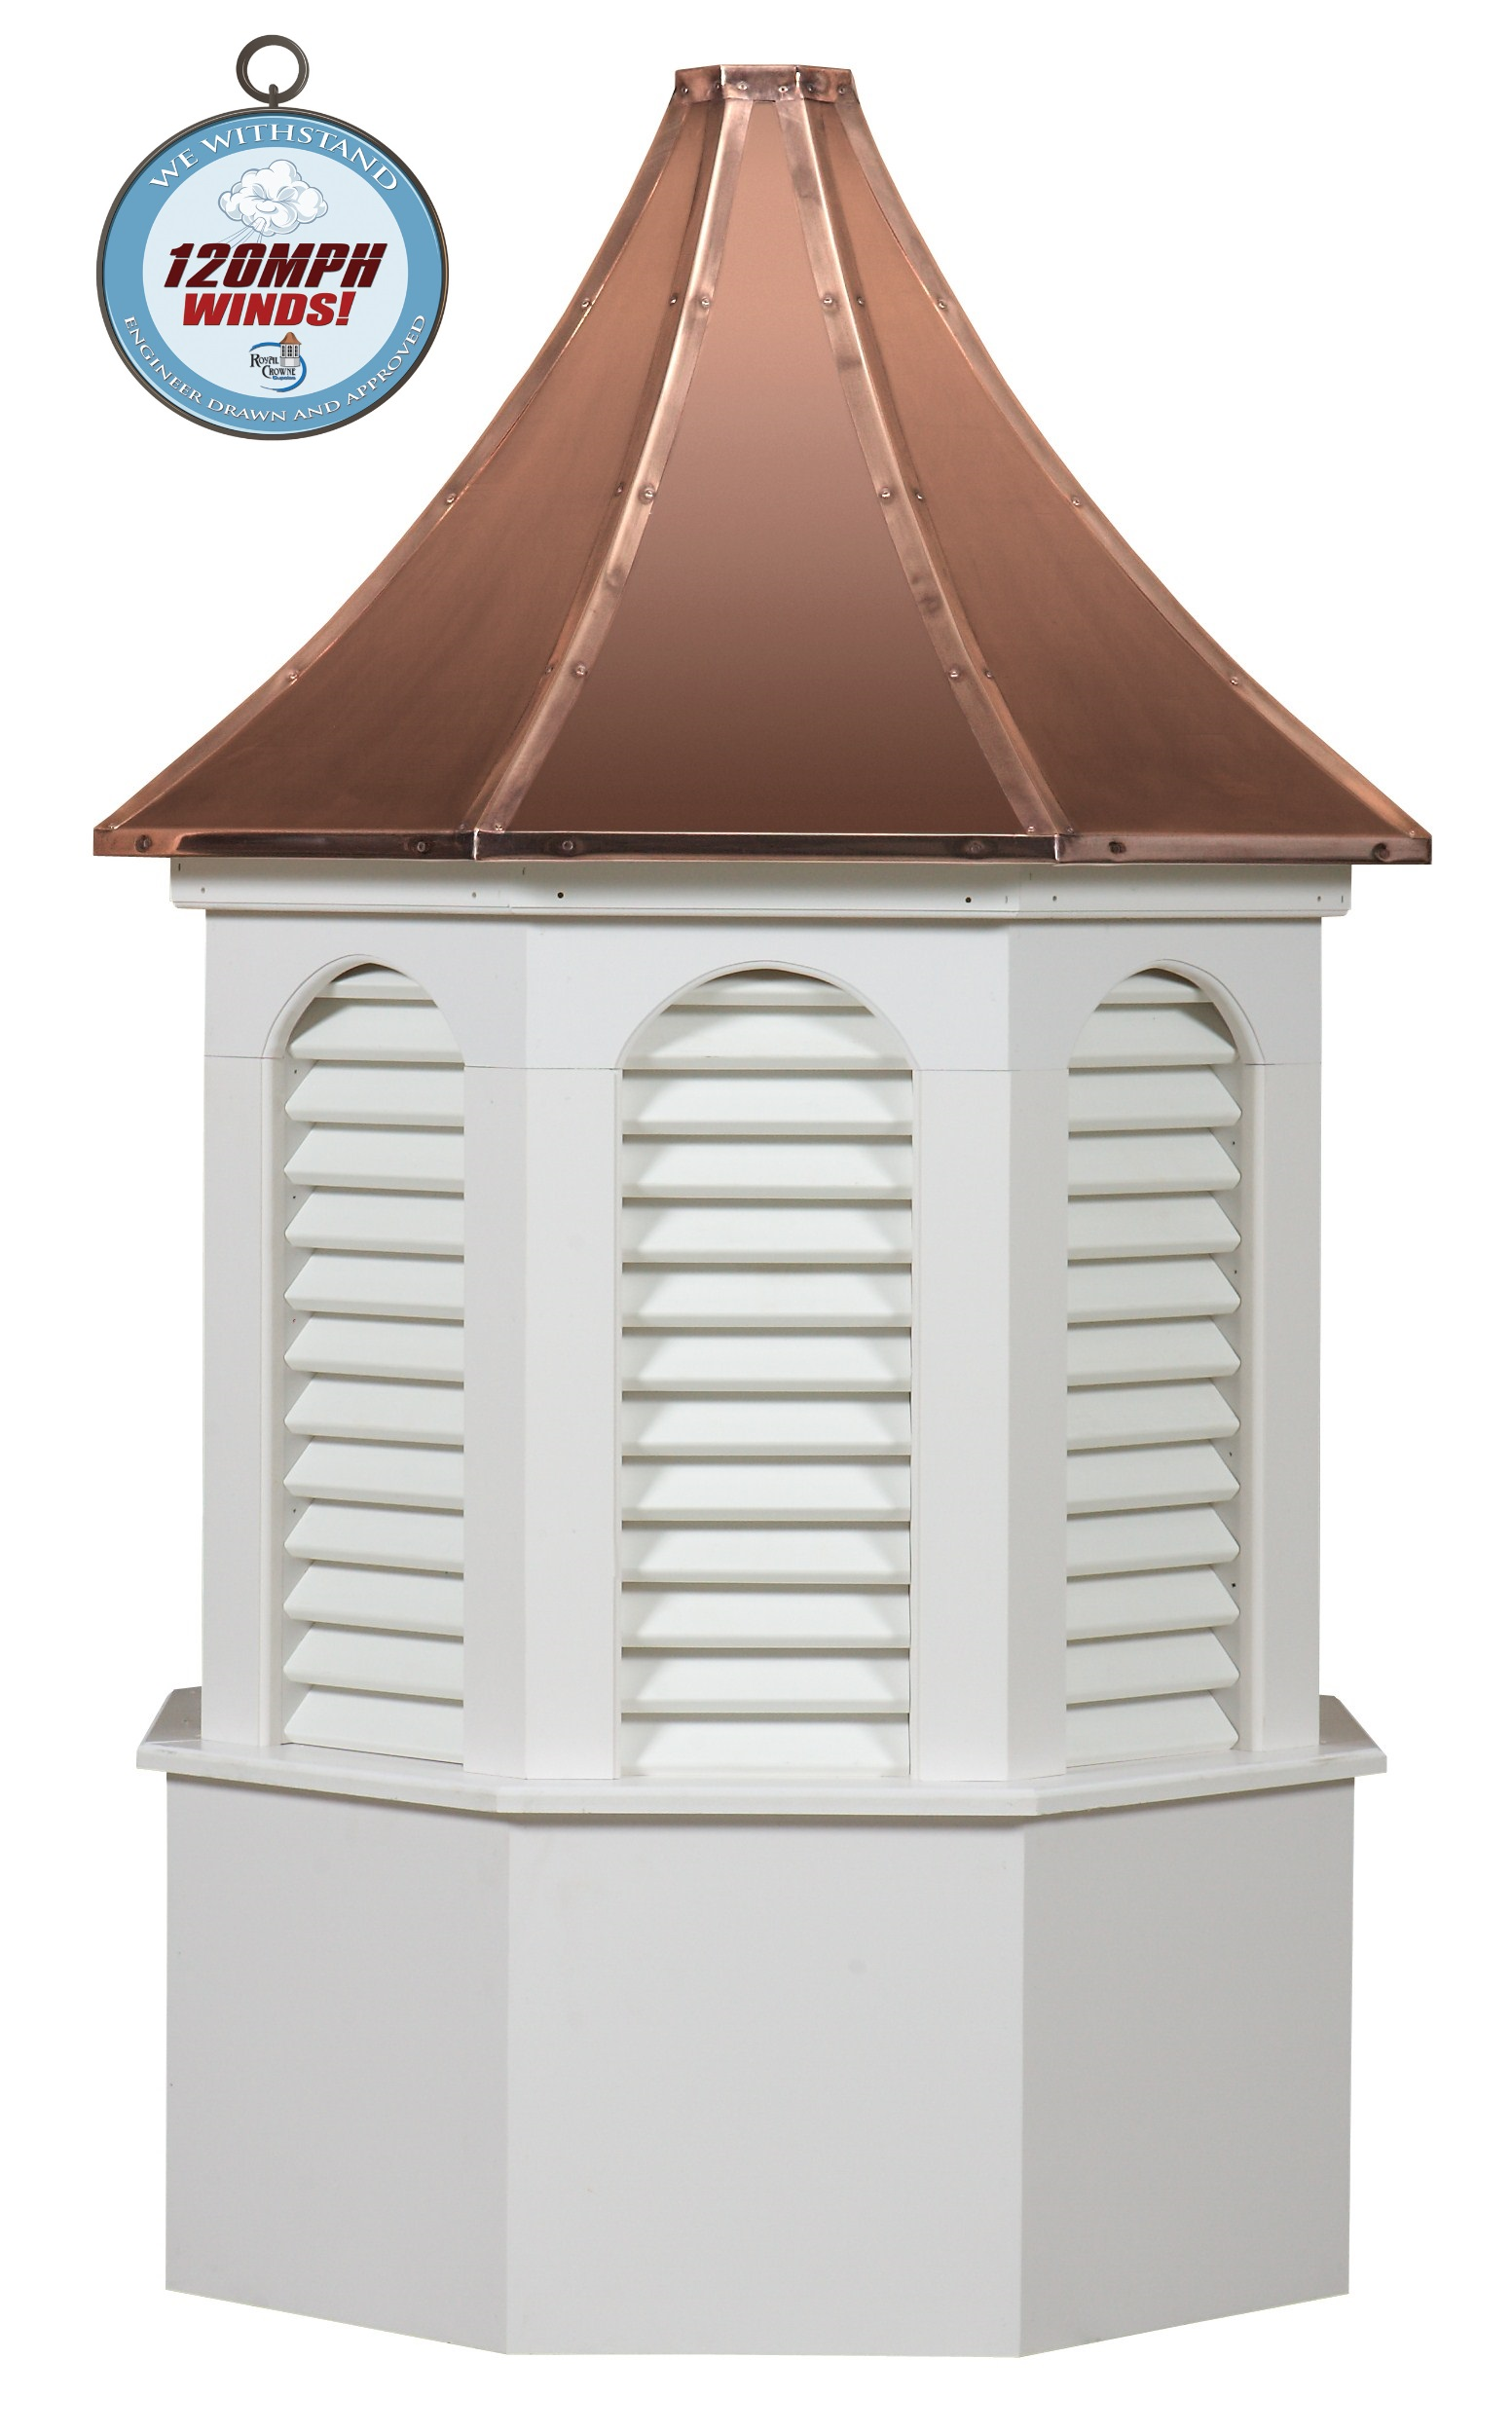 Kingston Cupola, Kingston Cupolas